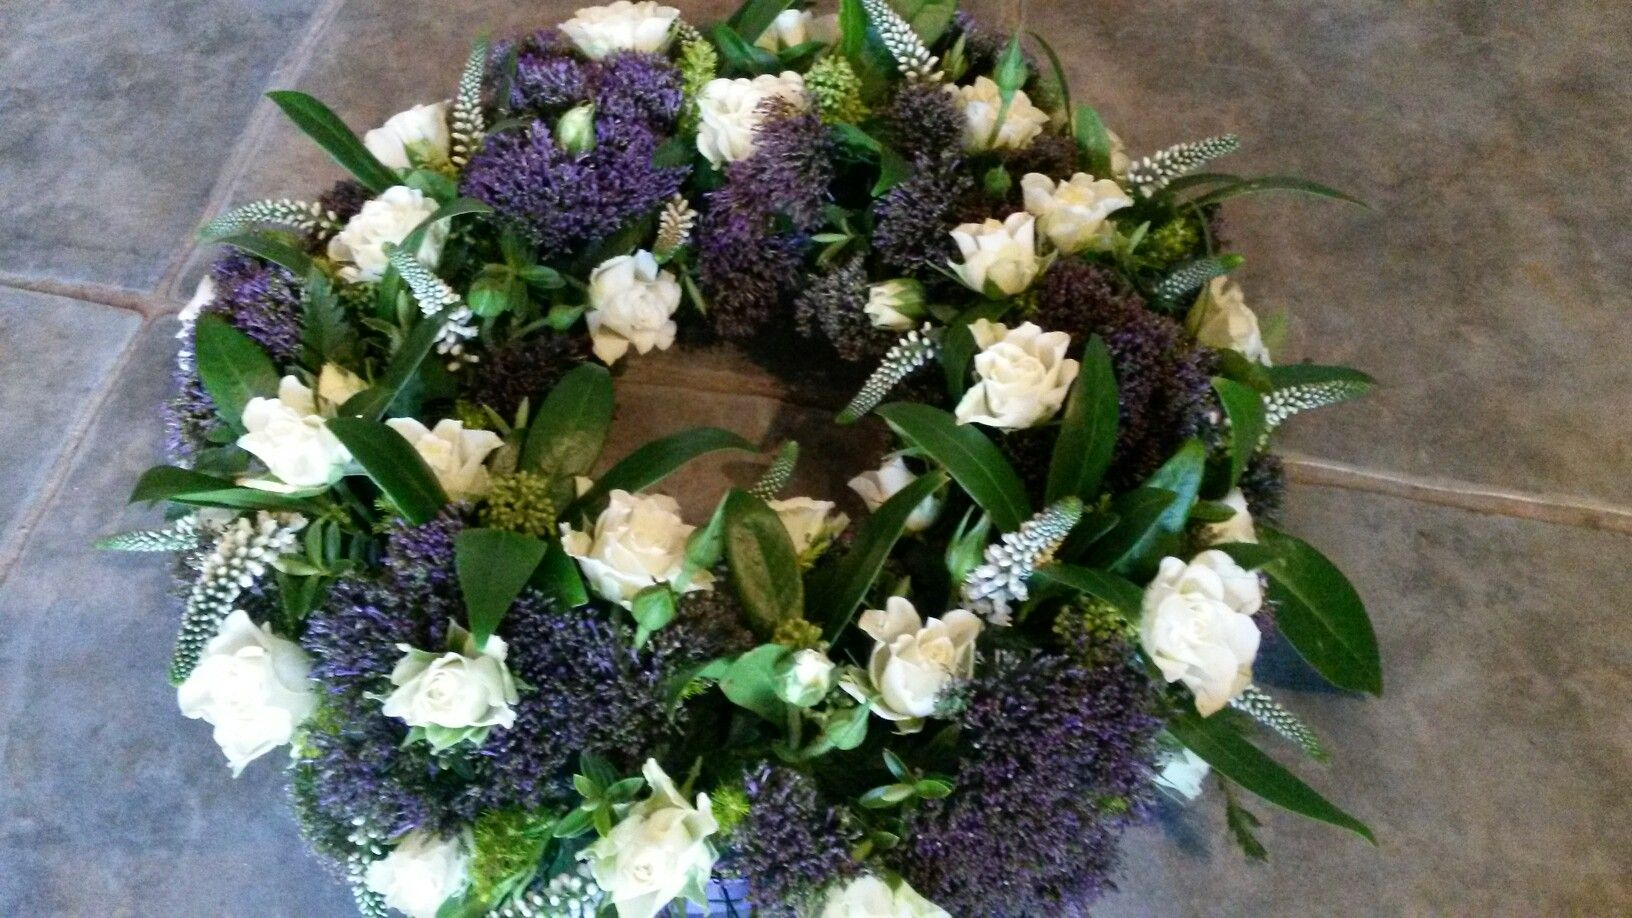 Sympathy Funeral Tribute In Purple And White Funeral Flowers